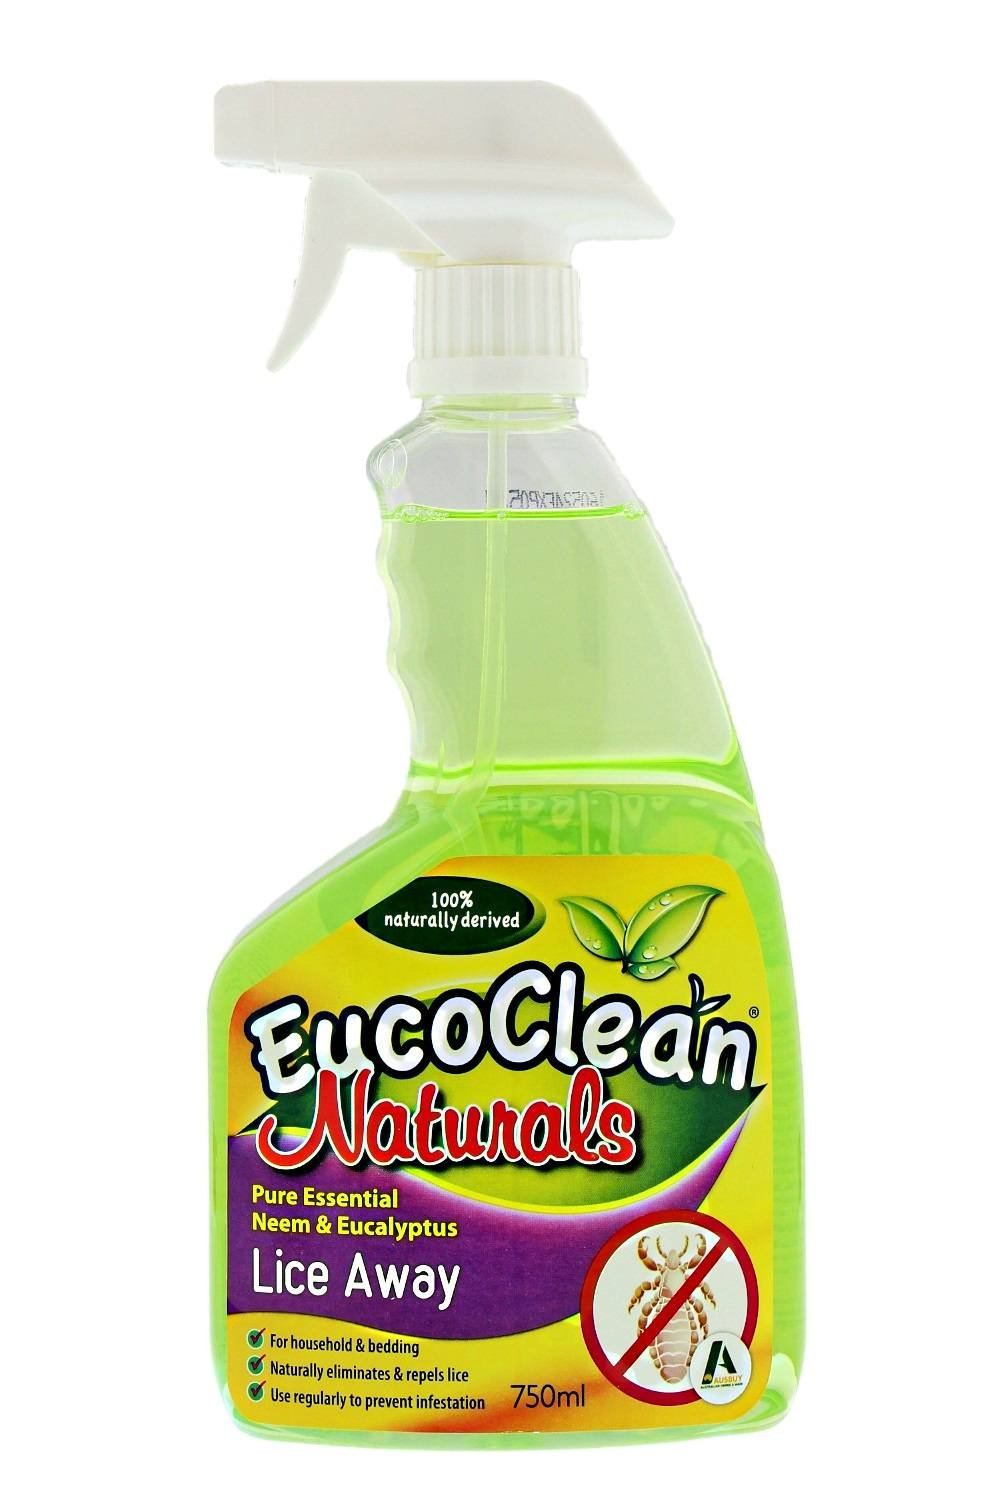 All Natural Lice Treatment Spray for Your Home by Eucoclean - Naturally Eliminates and Repels Lice - Use To Prevent Future Infestations - for Use on Backpacks, Clothing, Bedding, Furniture and More